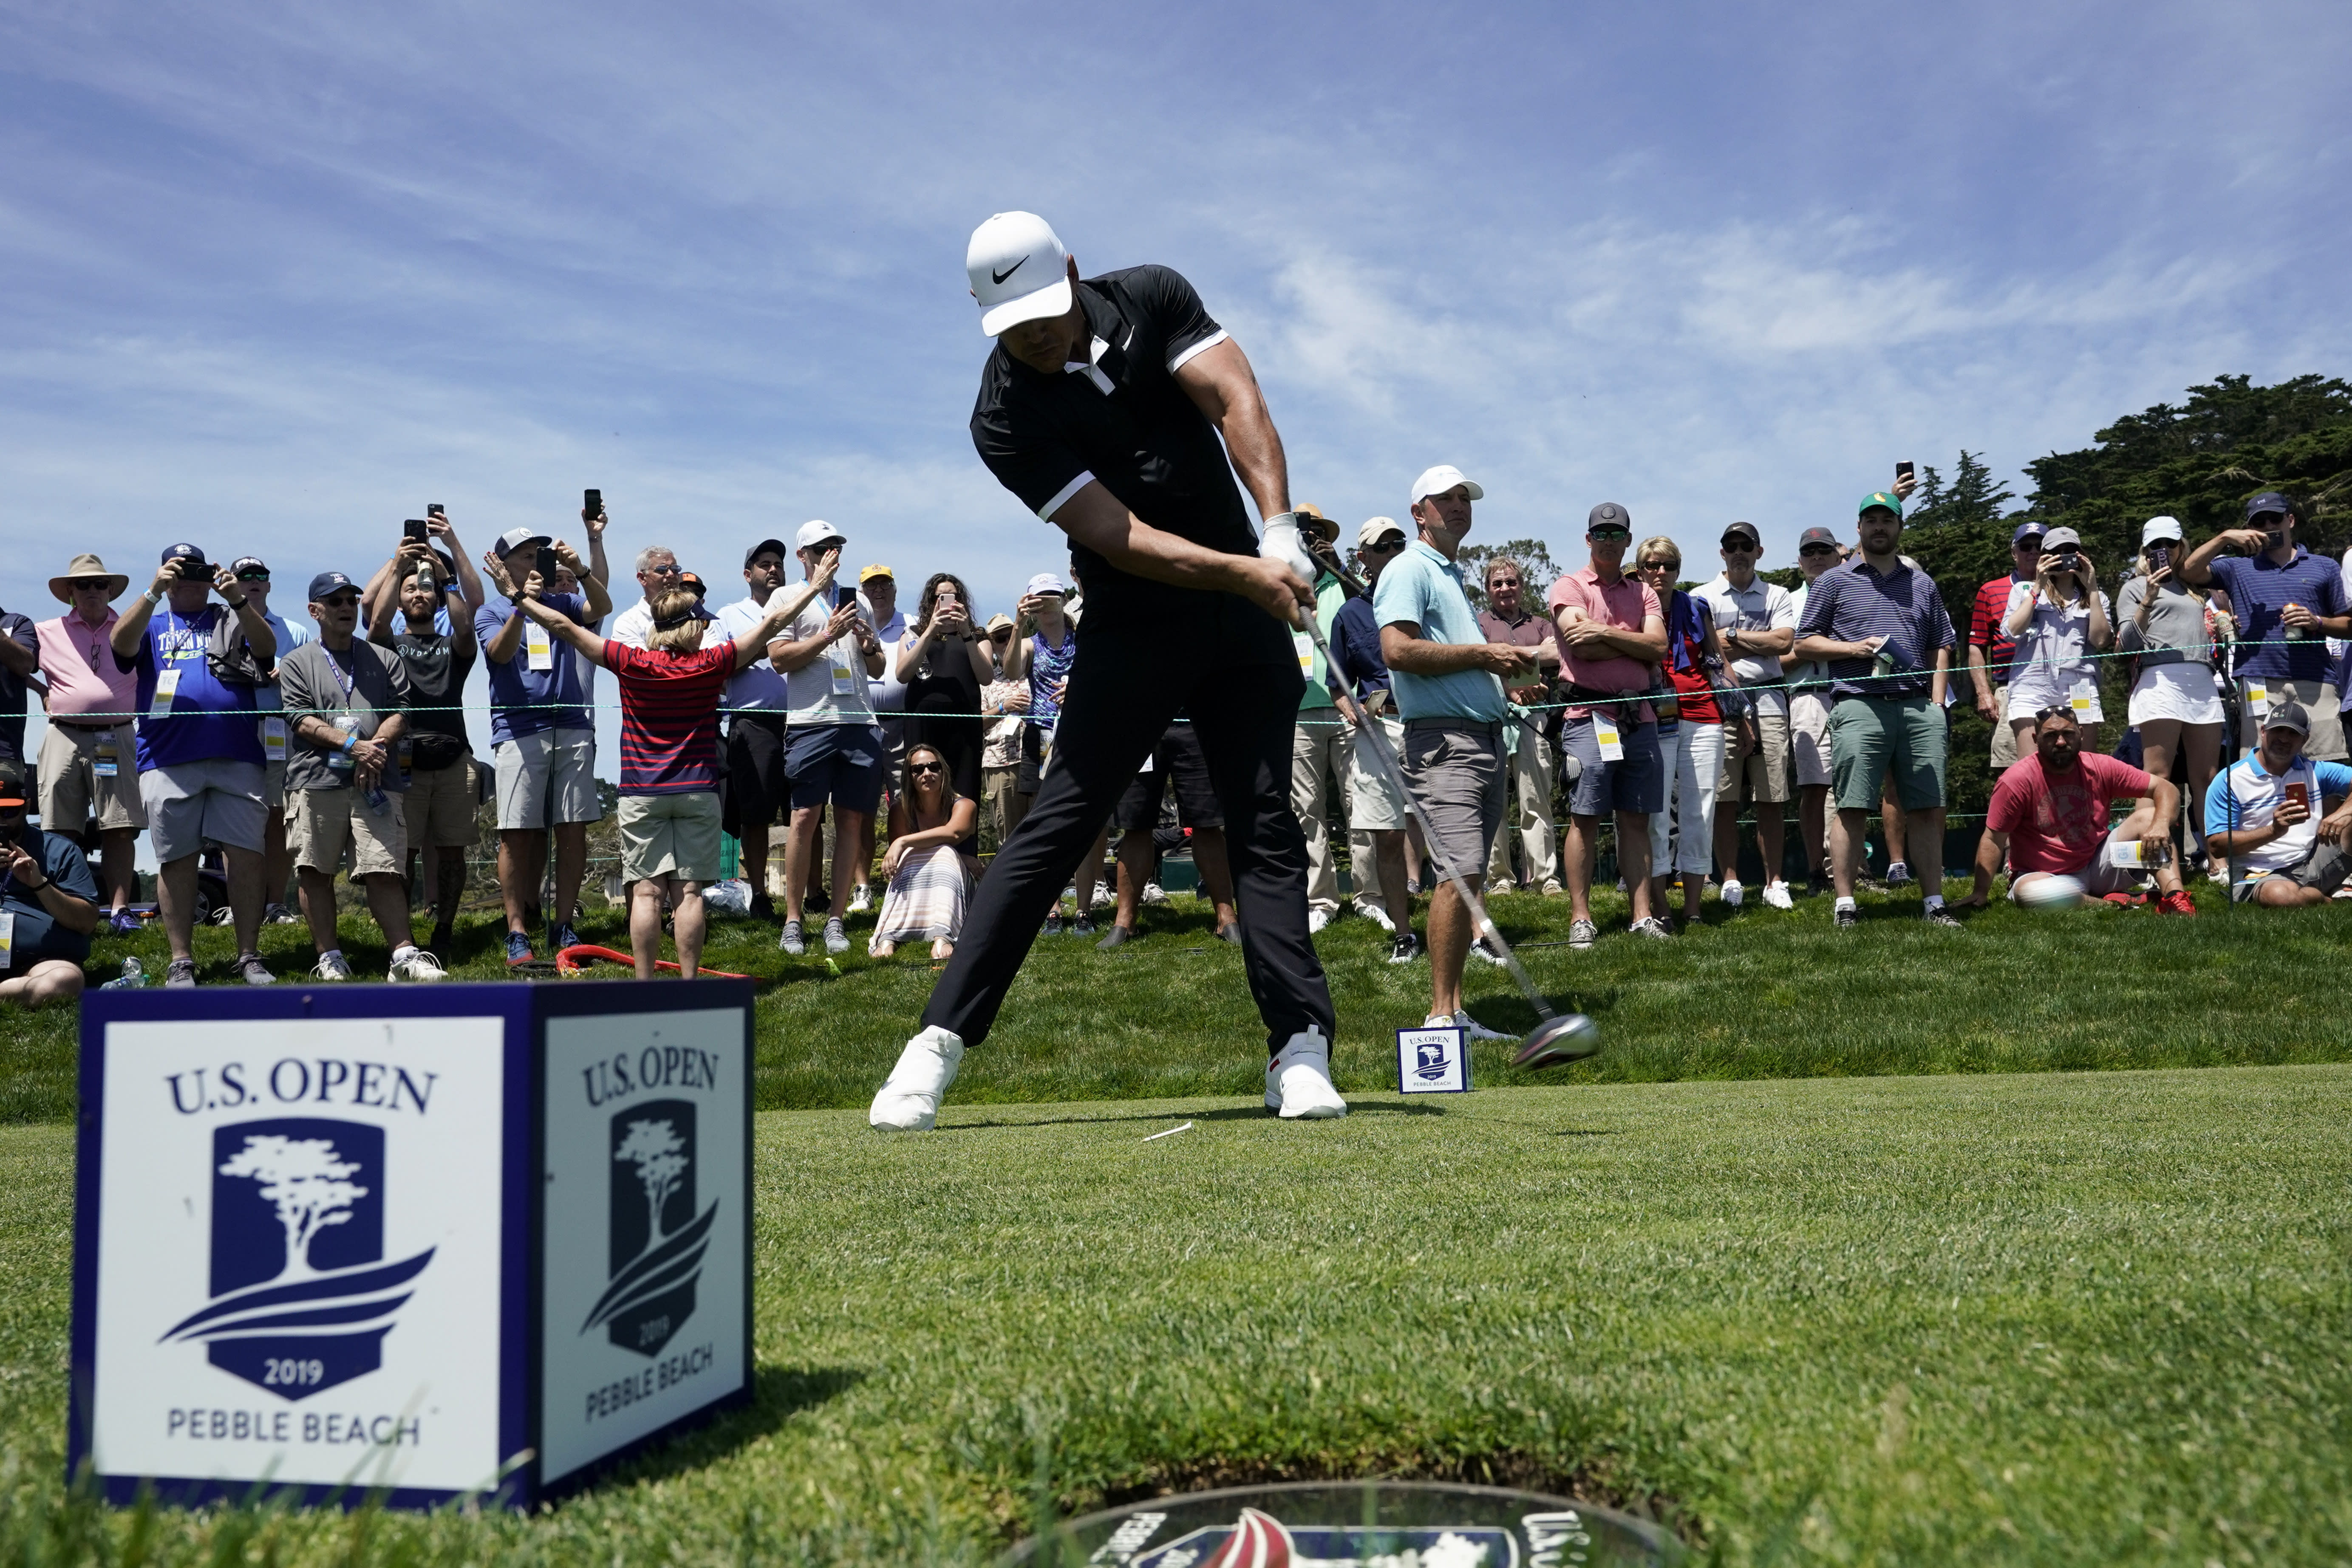 Brooks Koepka hits his tee shot on the ninth hole during a practice round for the U.S. Open Championship golf tournament Monday, June 10, 2019, in Pebble Beach, Calif. (AP)